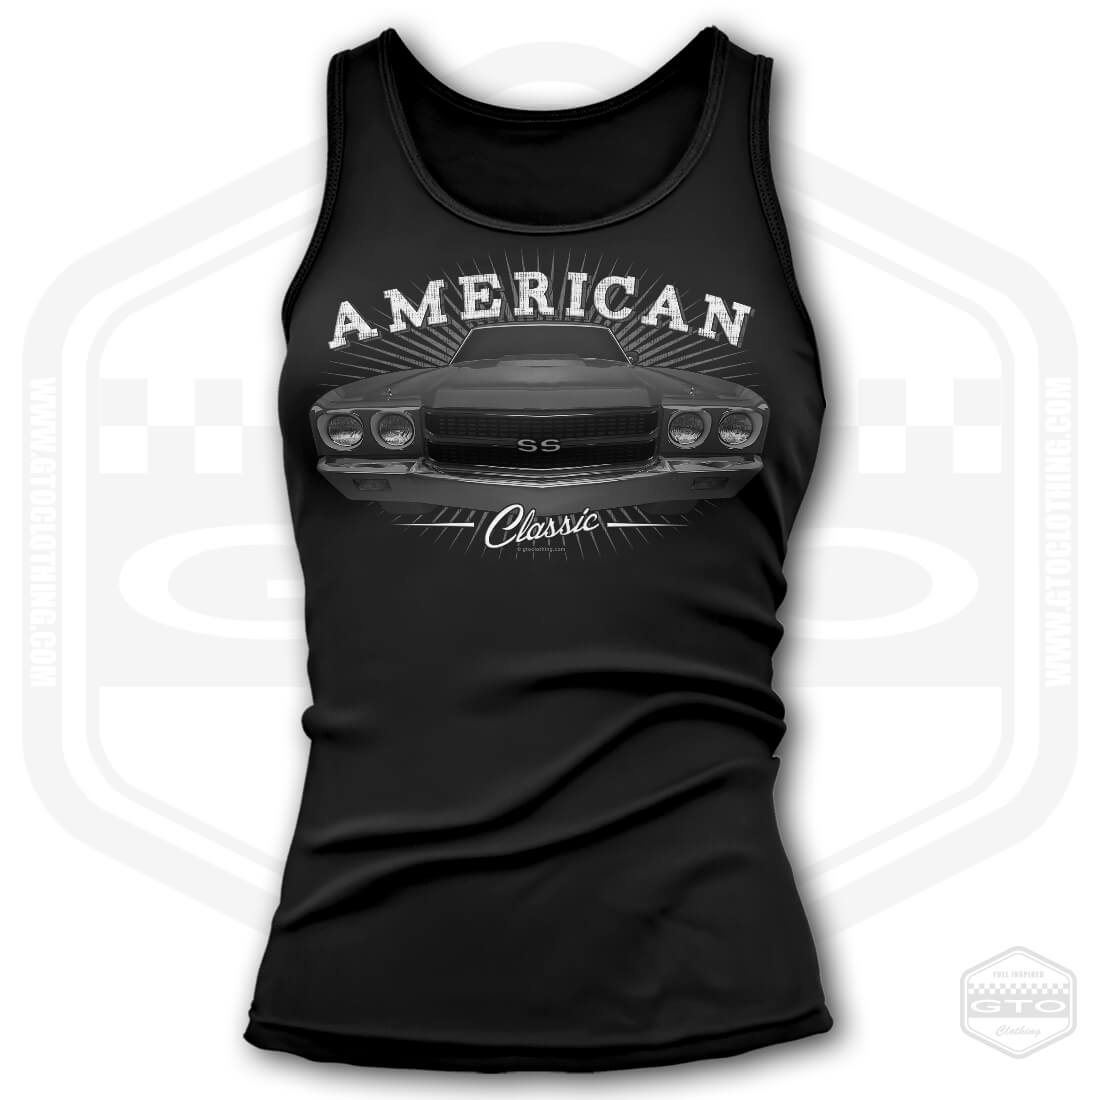 Made In USA by GTO Clothing 70 Challenger Awaken Women/'s Tank-Top Black S-3XL